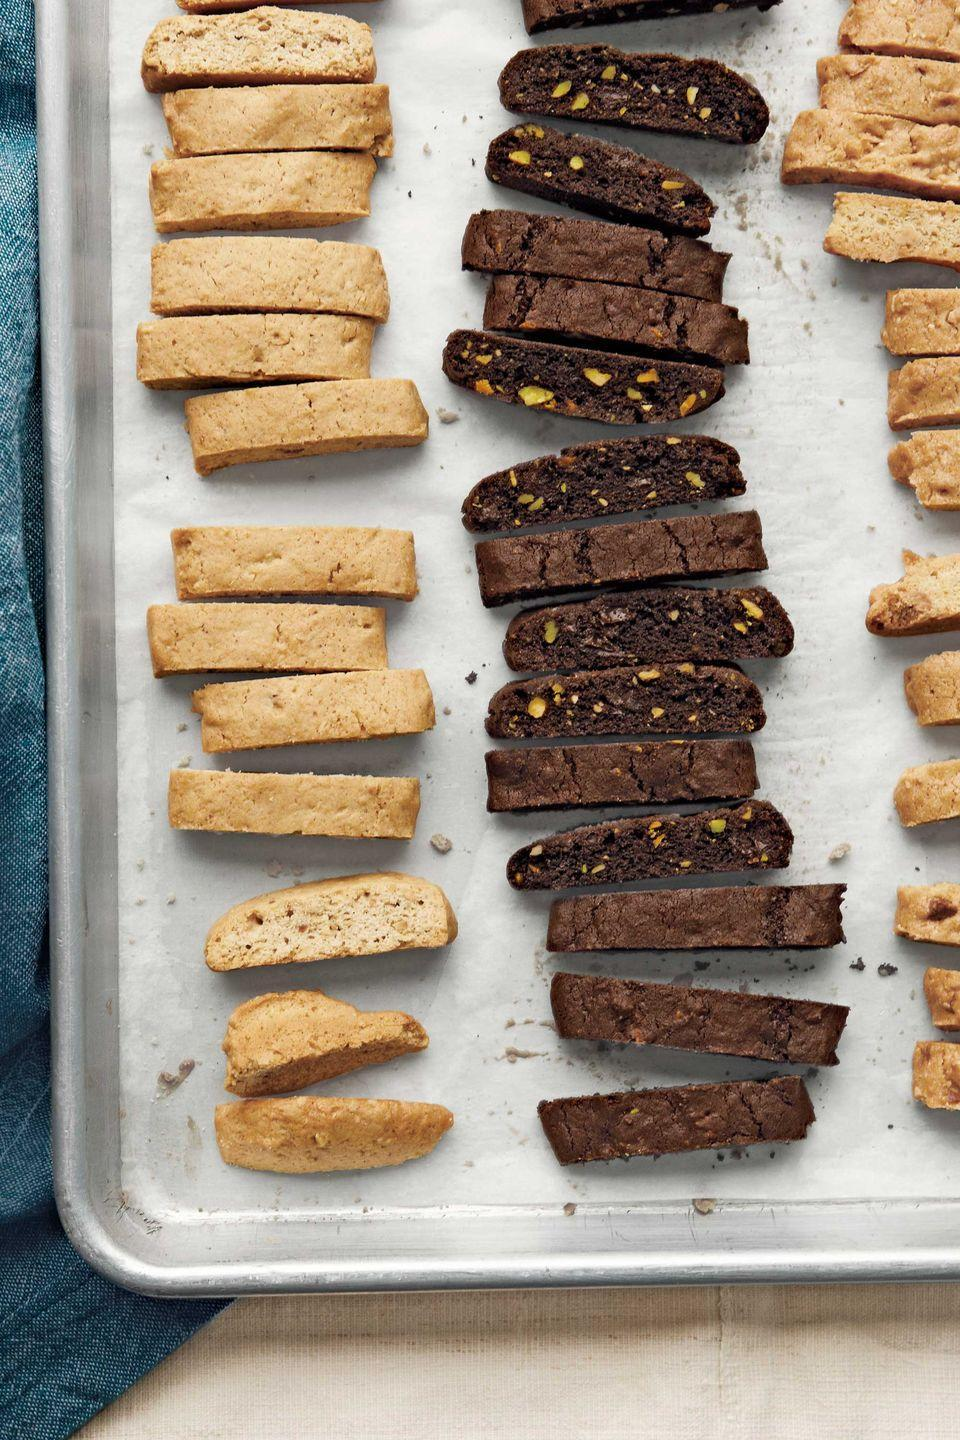 "<p>For a professional finish, sprinkle on a little fleur de sel before popping these lemon-olive oil and chocolate-pistachio biscotti in the oven. </p><p><strong>Recipes: </strong><a href=""https://www.countryliving.com/recipefinder/lemon-olive-oil-biscotti-recipe-clx1211?click=recipe_sr"" rel=""nofollow noopener"" target=""_blank"" data-ylk=""slk:Lemon-Olive Oil Biscotti"" class=""link rapid-noclick-resp""><strong>Lemon-Olive Oil Biscotti</strong></a></p><p><a href=""https://www.countryliving.com/food-drinks/recipes/a3744/chocolate-pistachio-biscotti-recipe-clx1211/?click=recipe_sr"" rel=""nofollow noopener"" target=""_blank"" data-ylk=""slk:Chocolate-Pistachio Biscotti"" class=""link rapid-noclick-resp""><strong>Chocolate-Pistachio Biscotti</strong></a></p>"